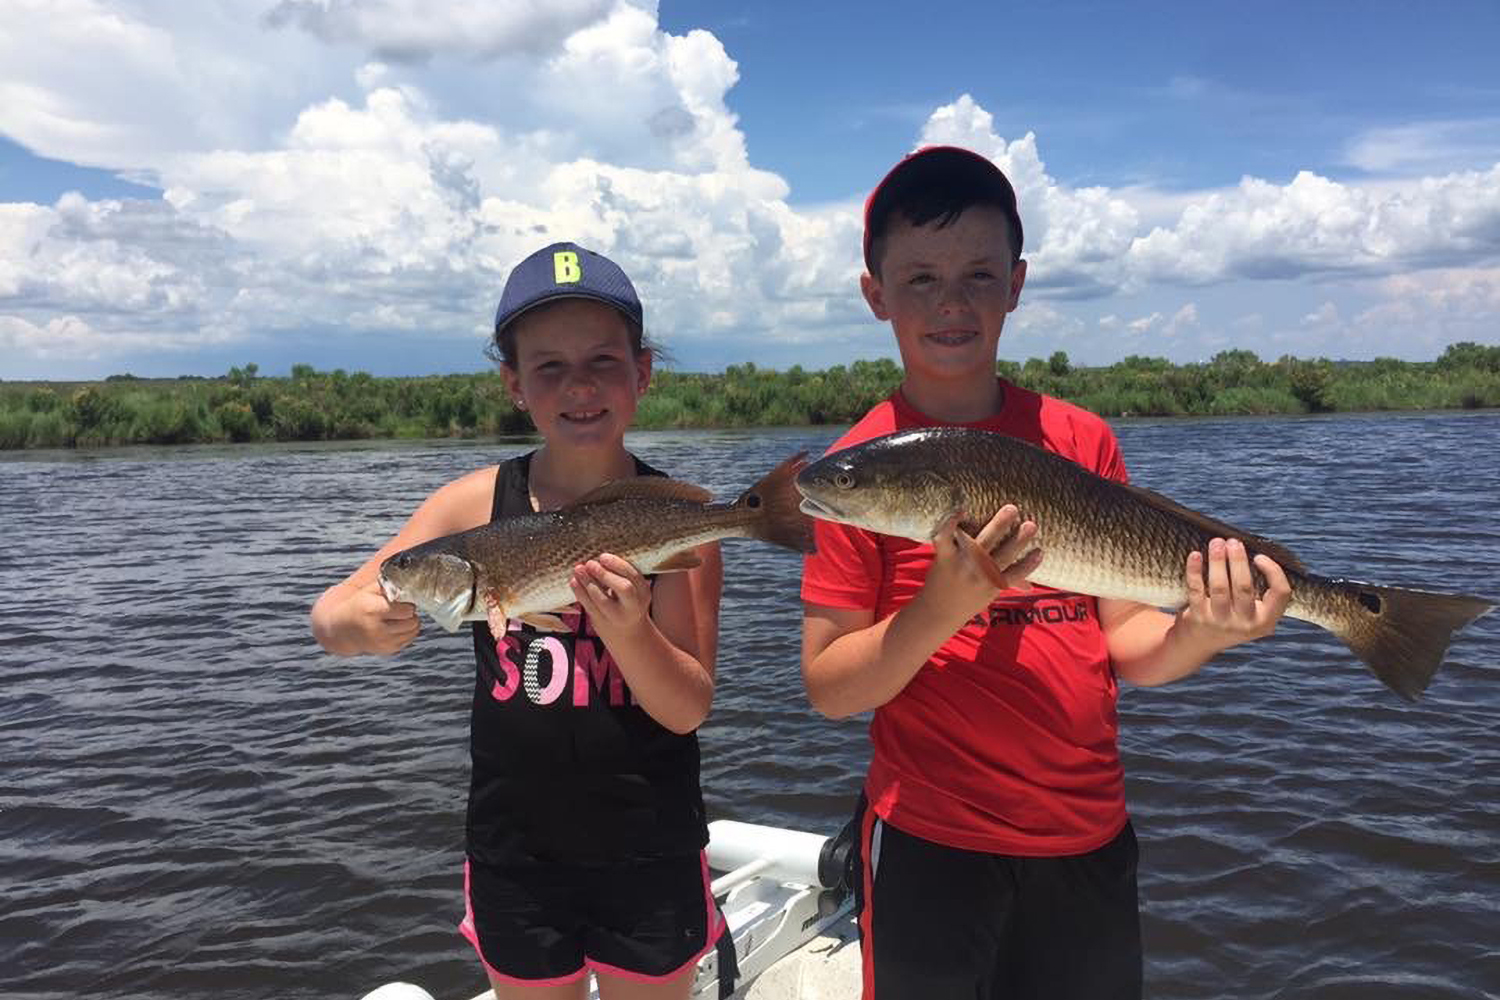 Two kids on a boat hold fish they caught.